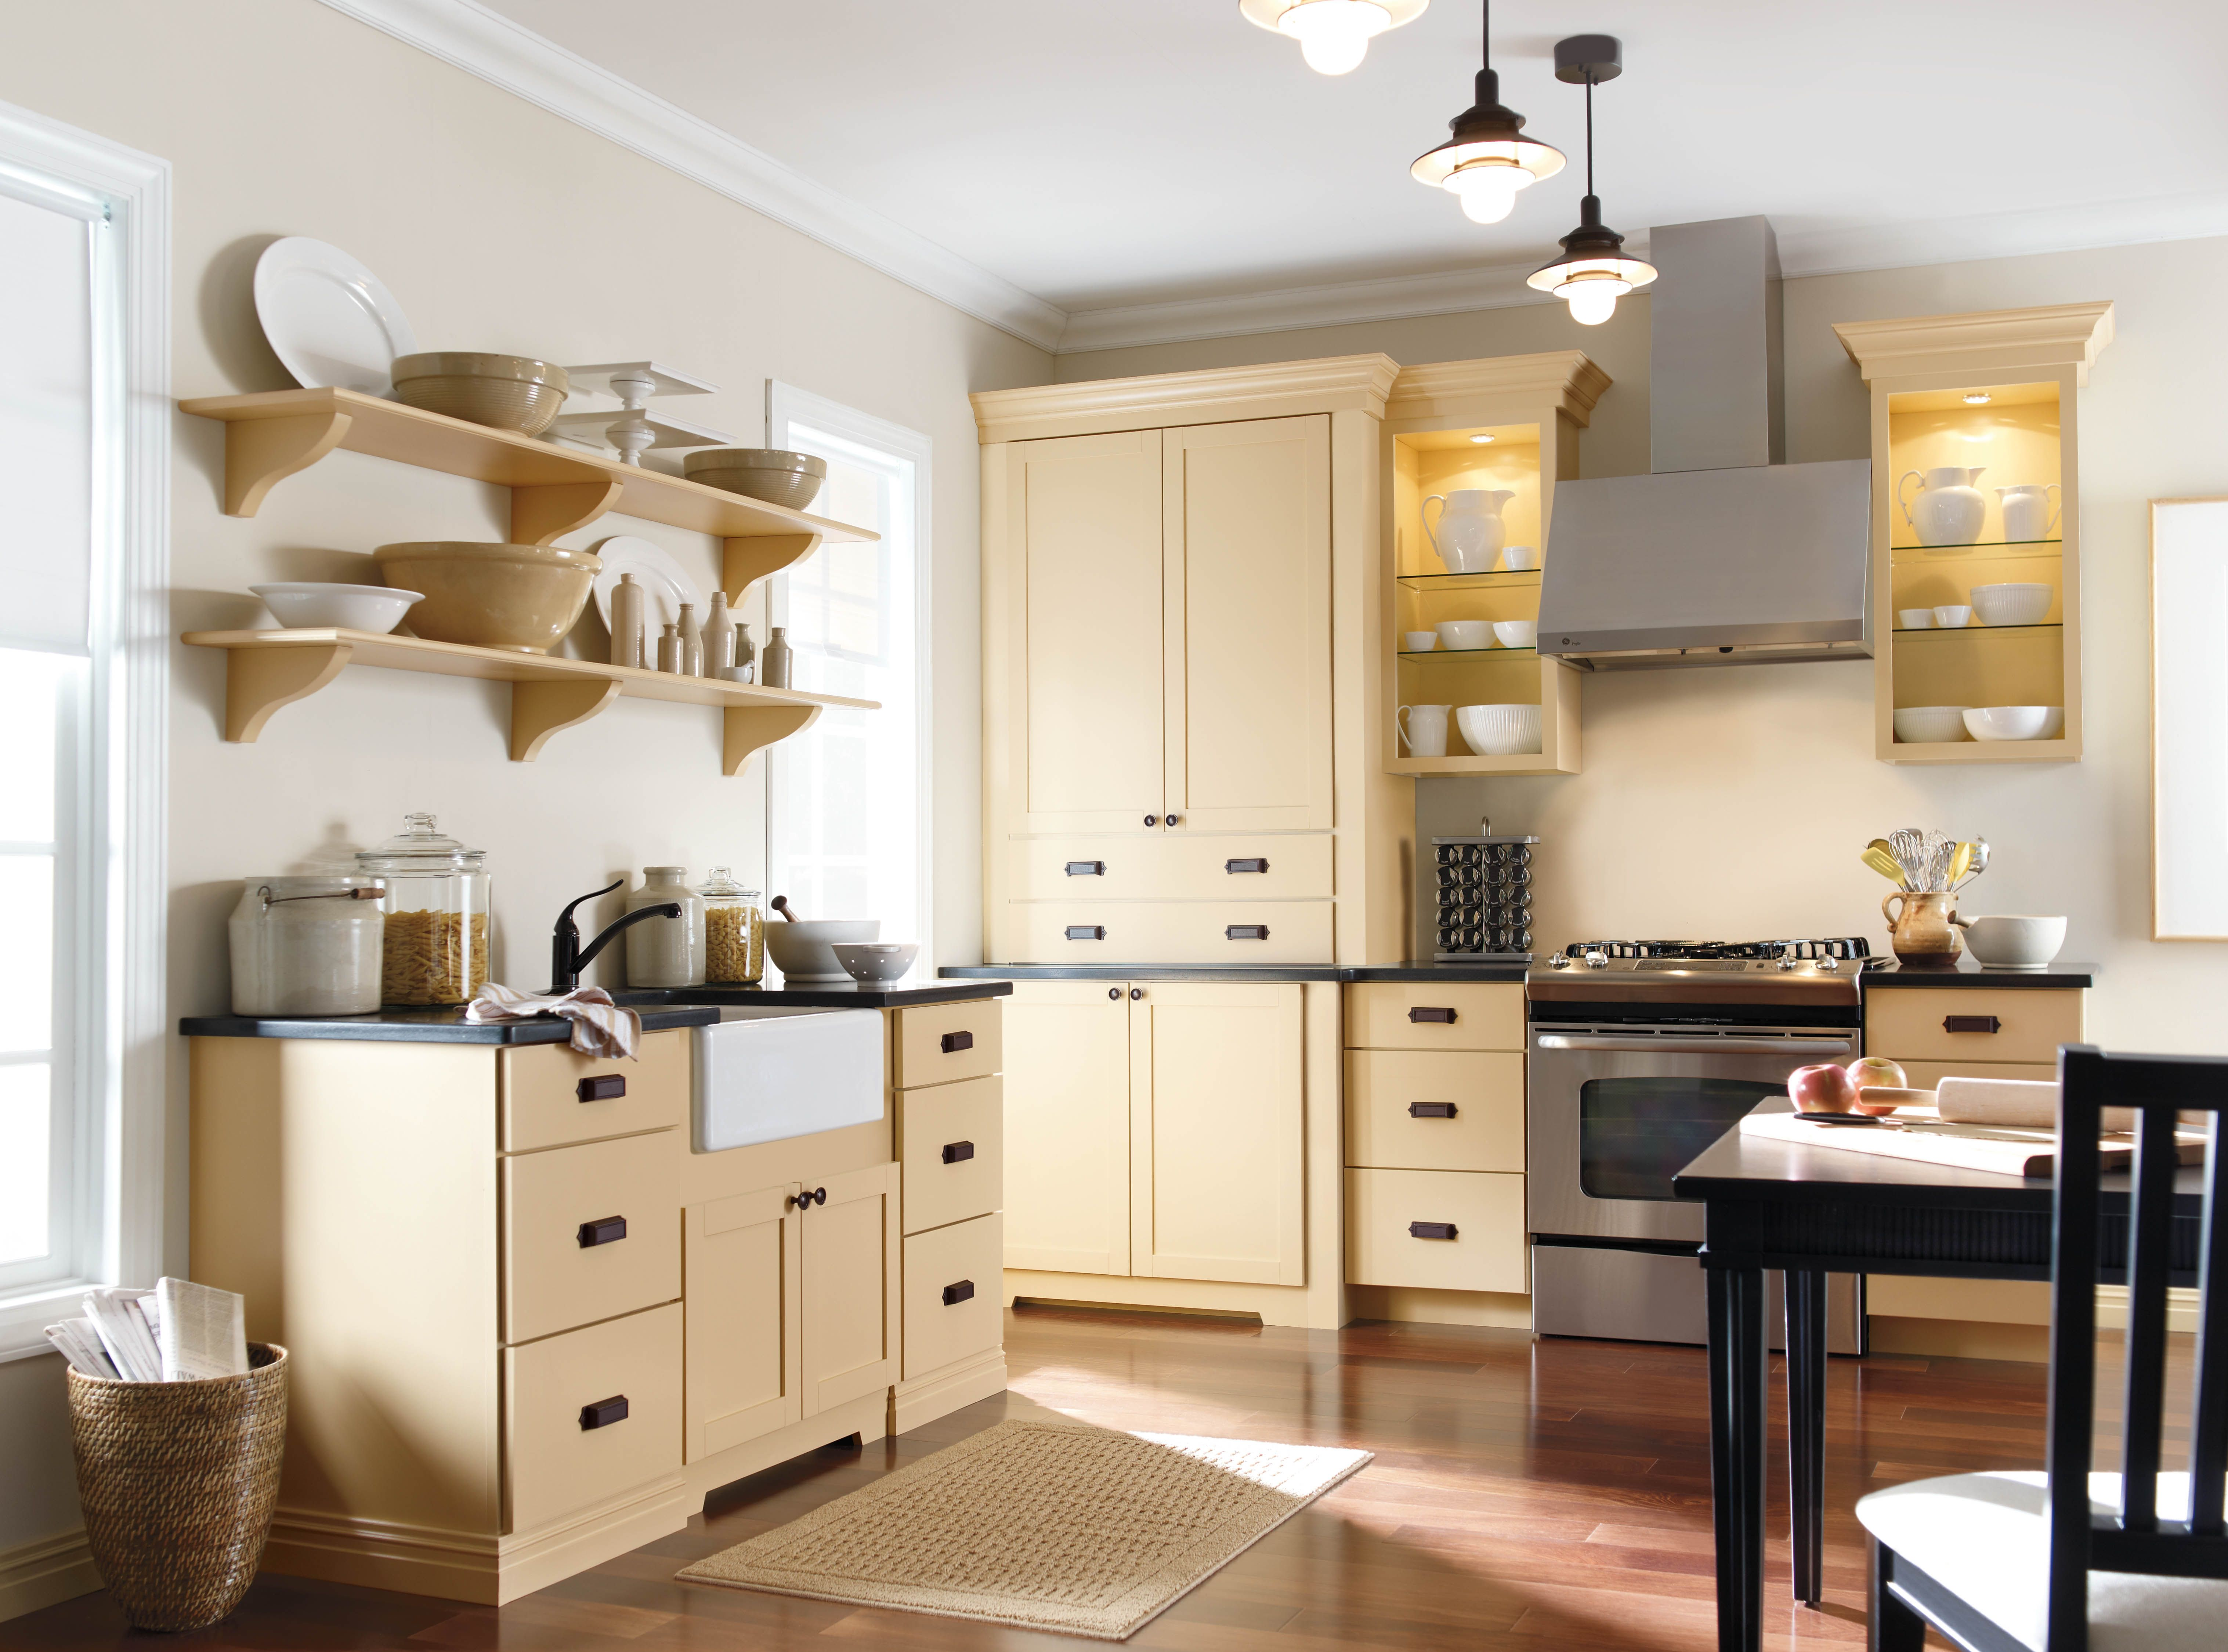 cabinets kitchen awesome new how cabinet to stewart of tour doors smallanize arrange backgrounds without martha